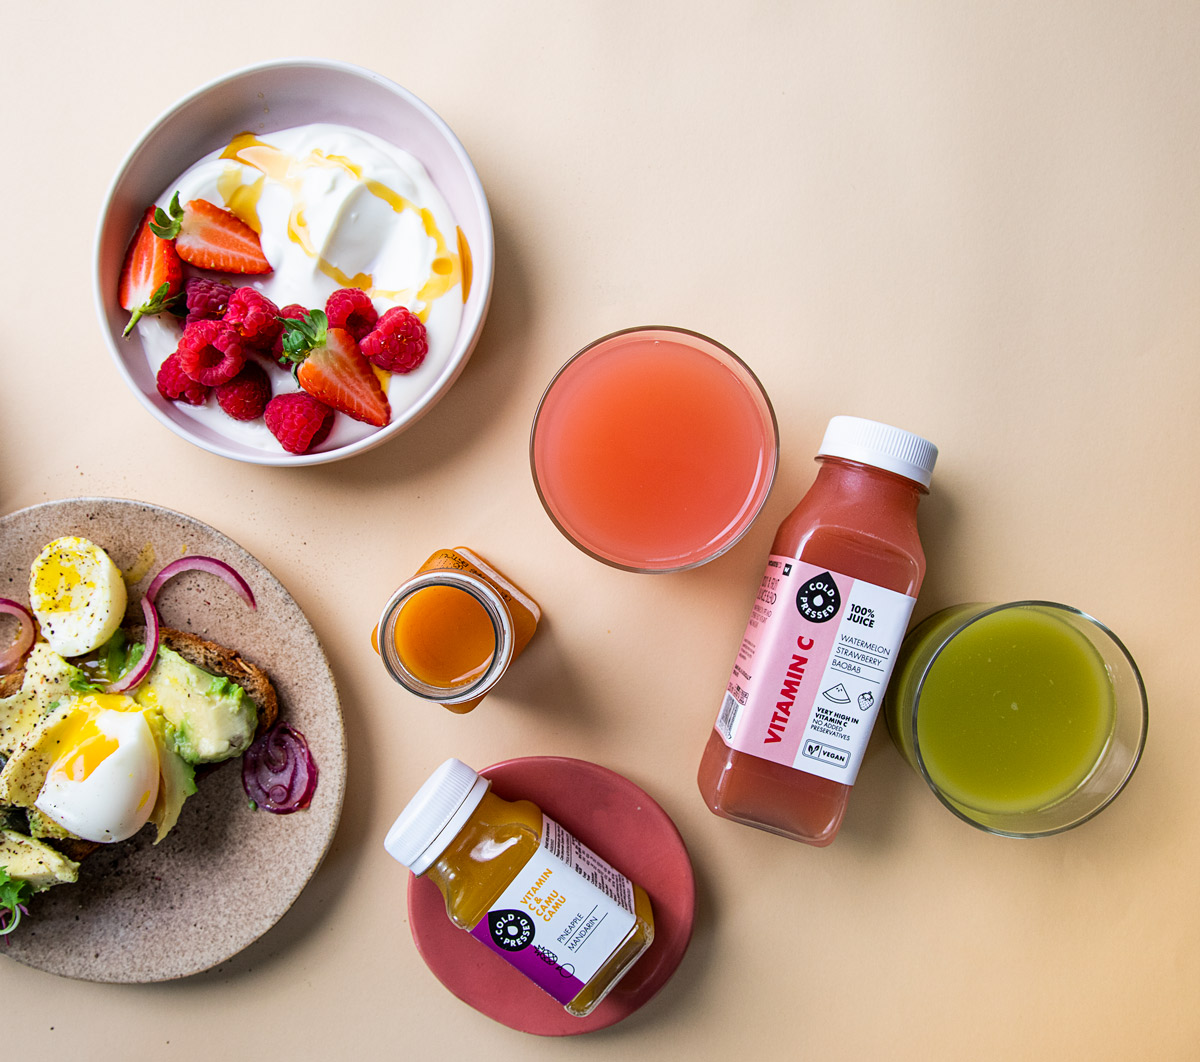 Woolworths cold press juice with breakfast bowls